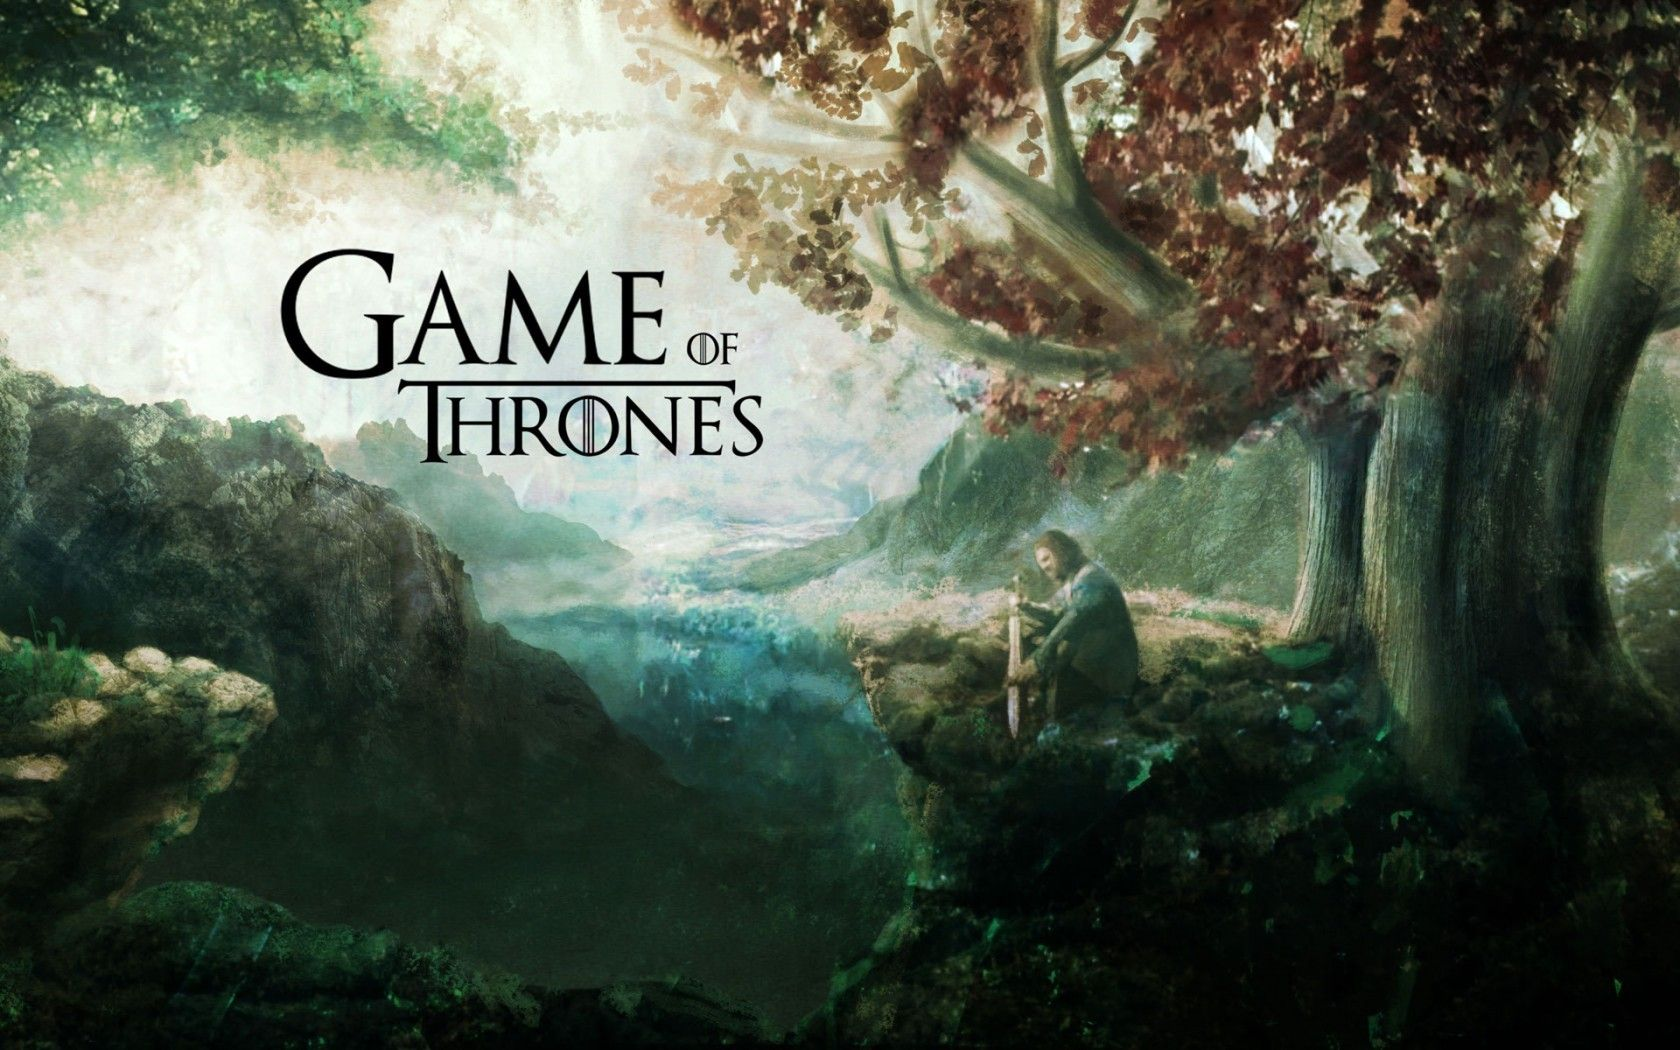 game of thrones wallpaper 1920x1080 #gameofthrones #whitewalkersnet